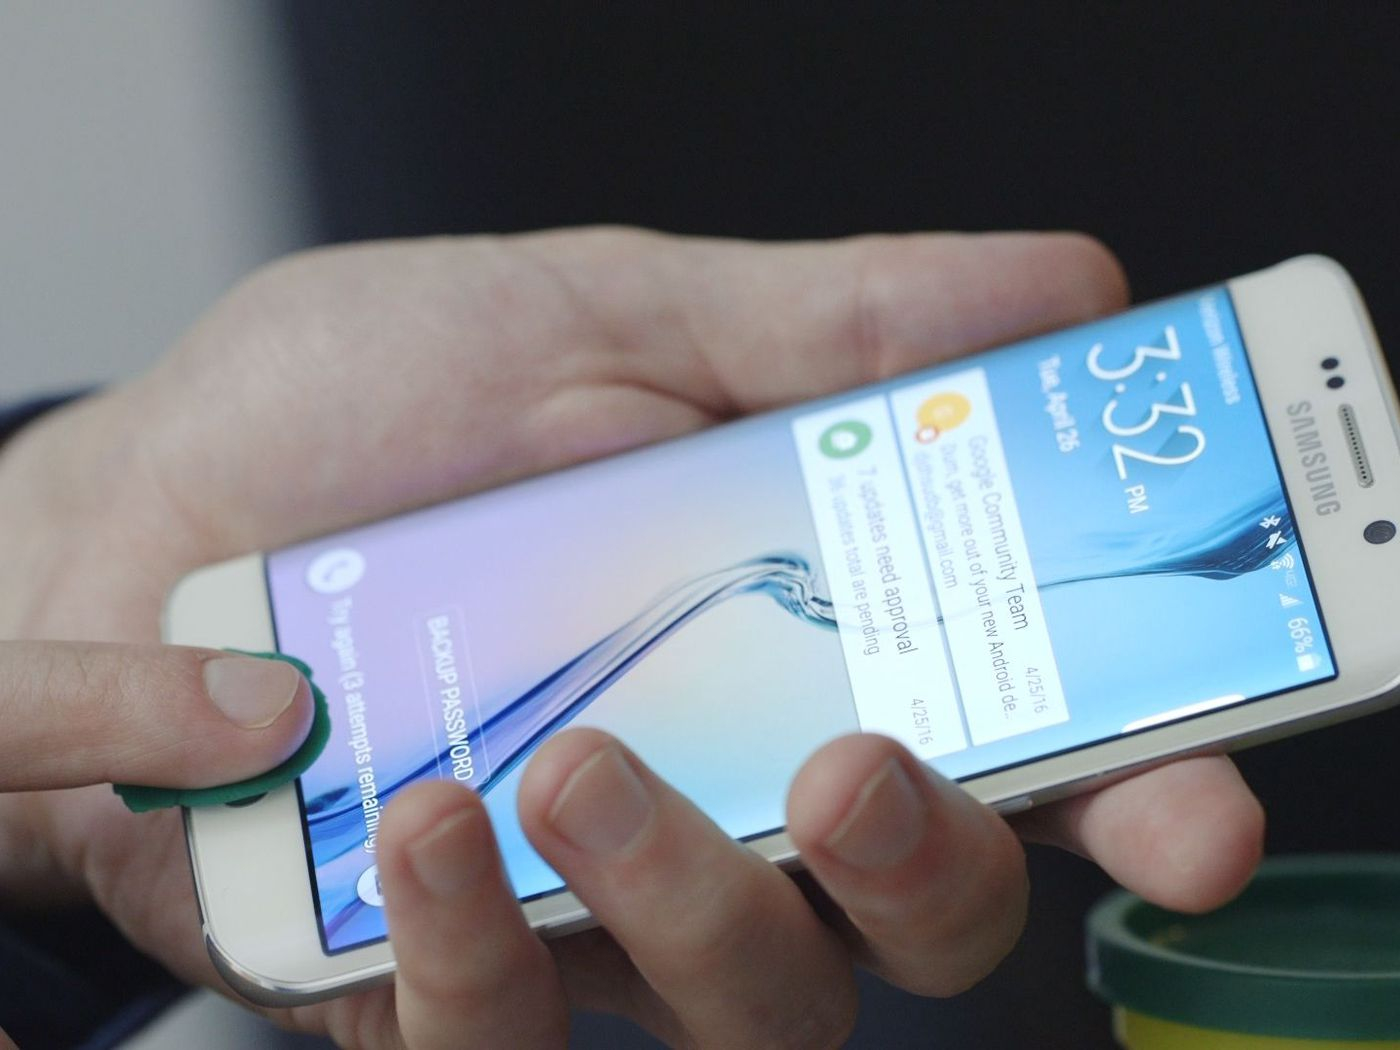 Your phone's biggest vulnerability is your fingerprint - The